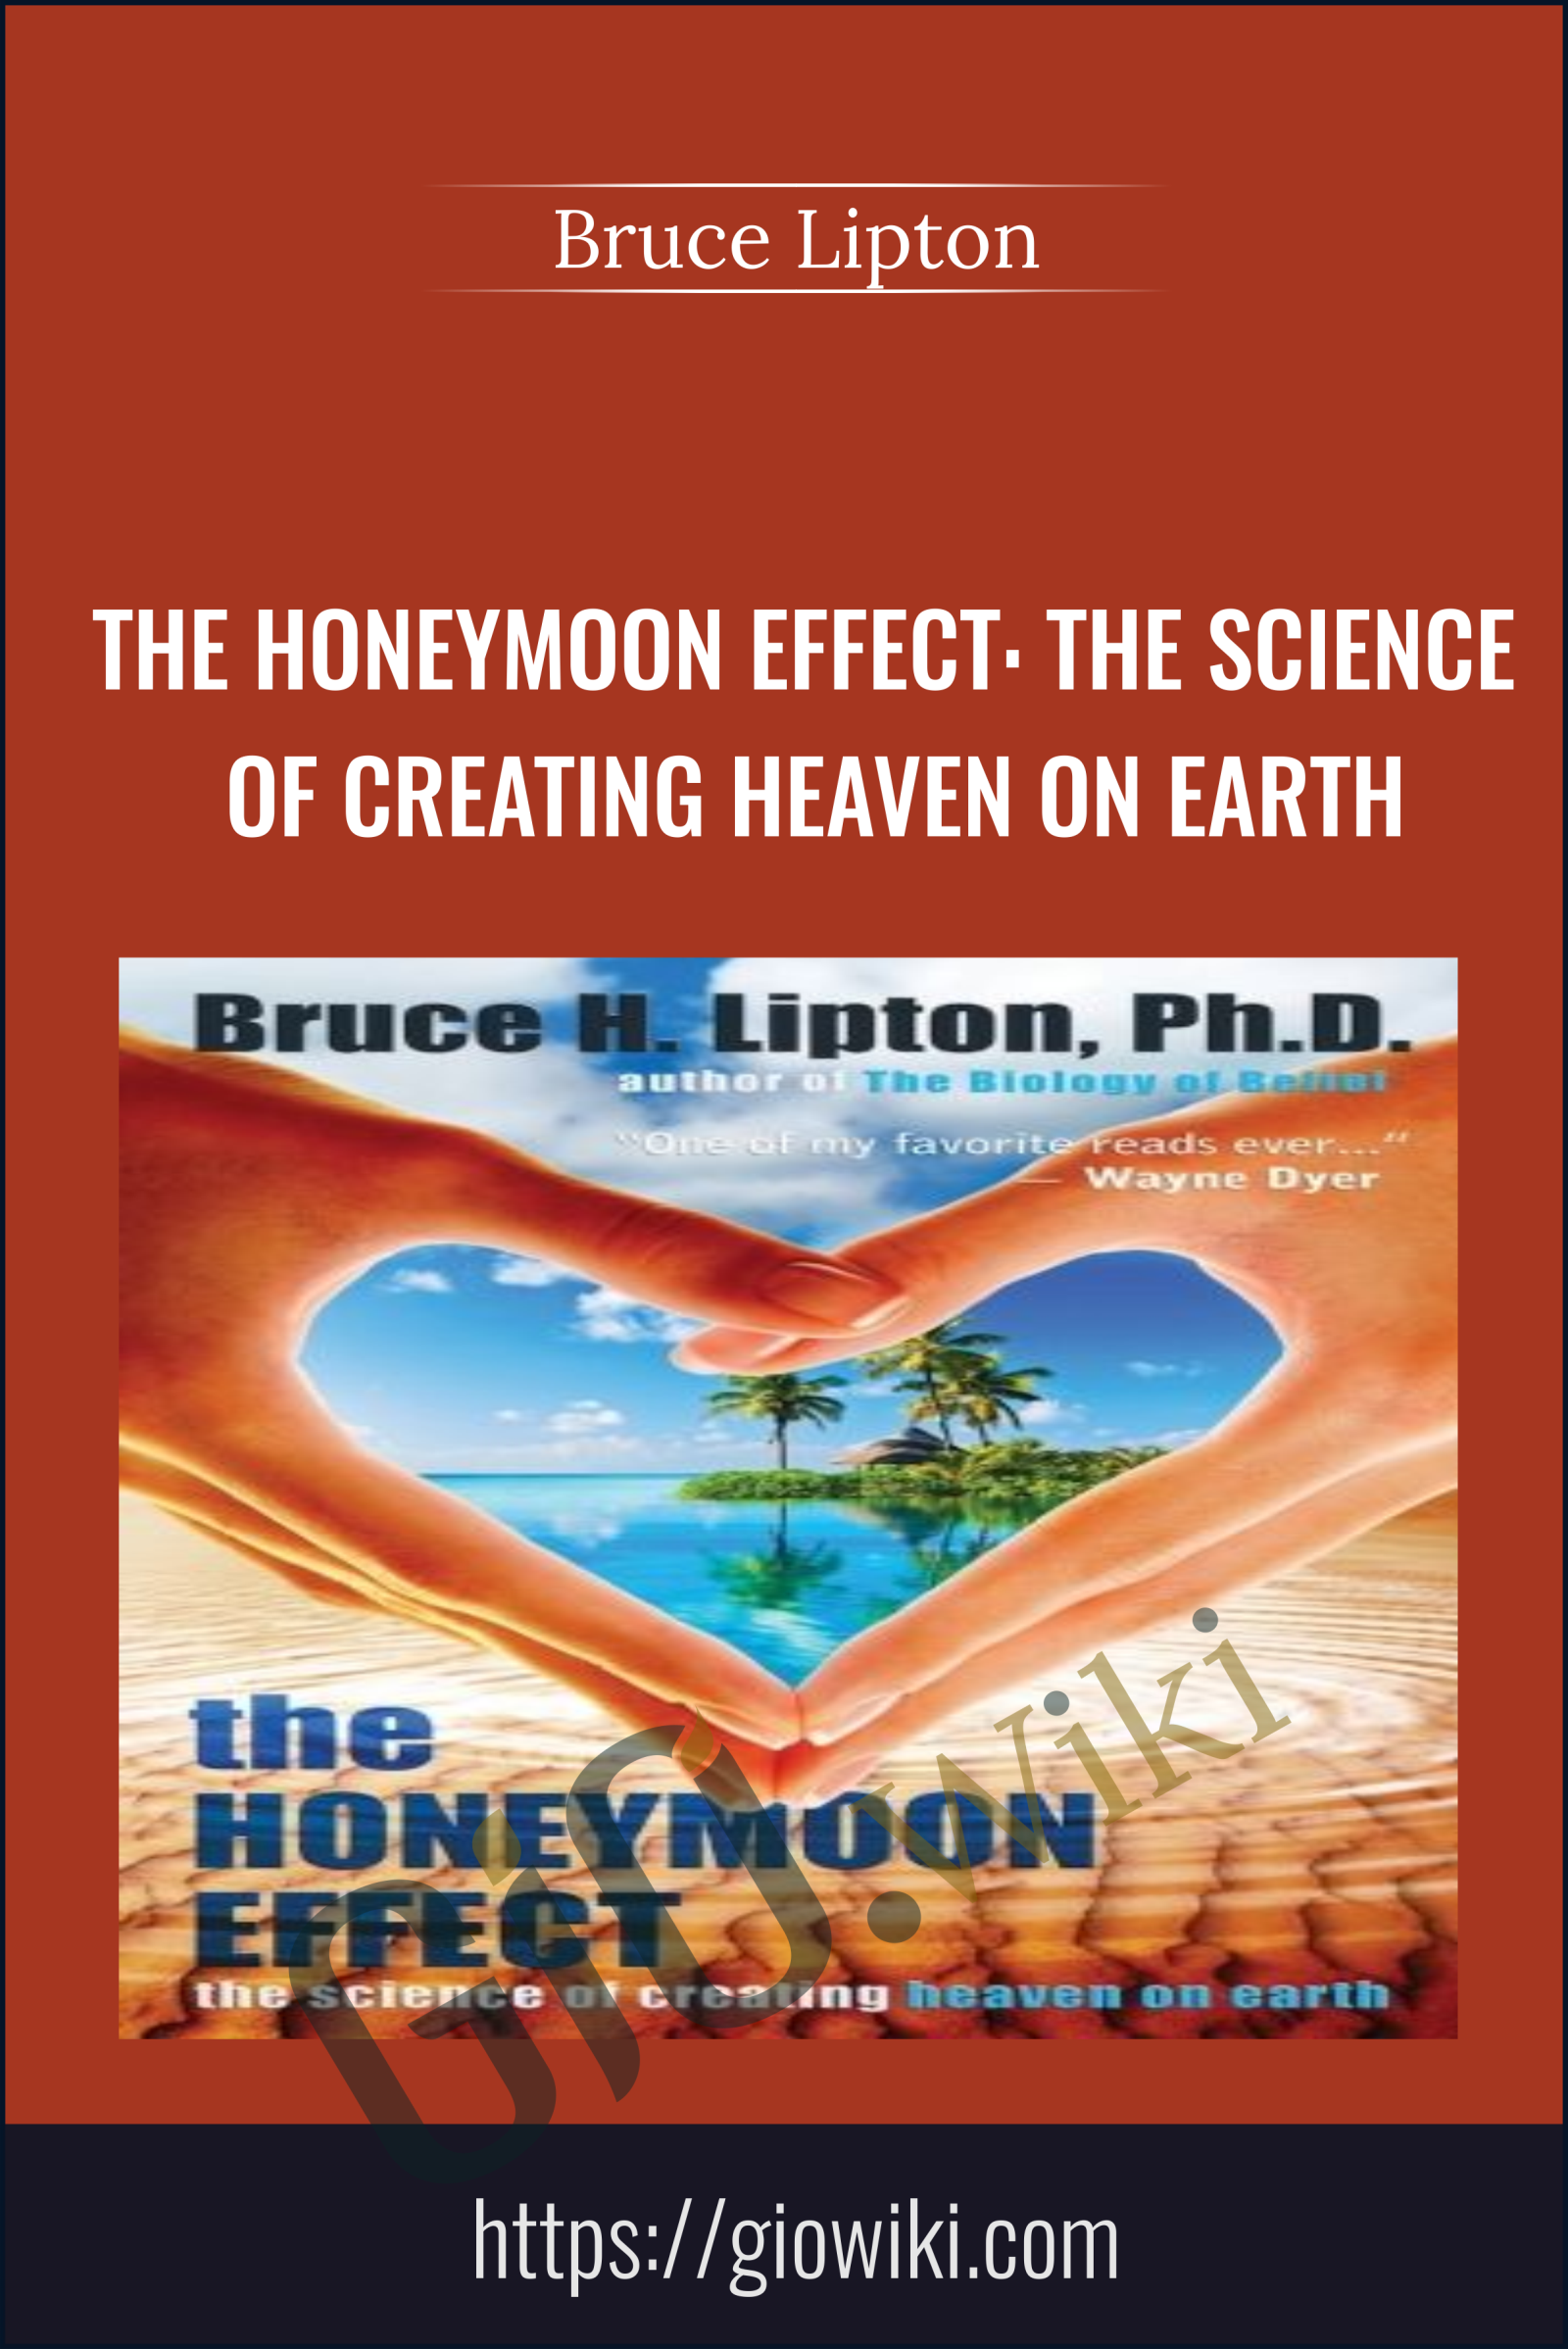 The Honeymoon Effect: The Science of Creating Heaven on Earth - Bruce Lipton